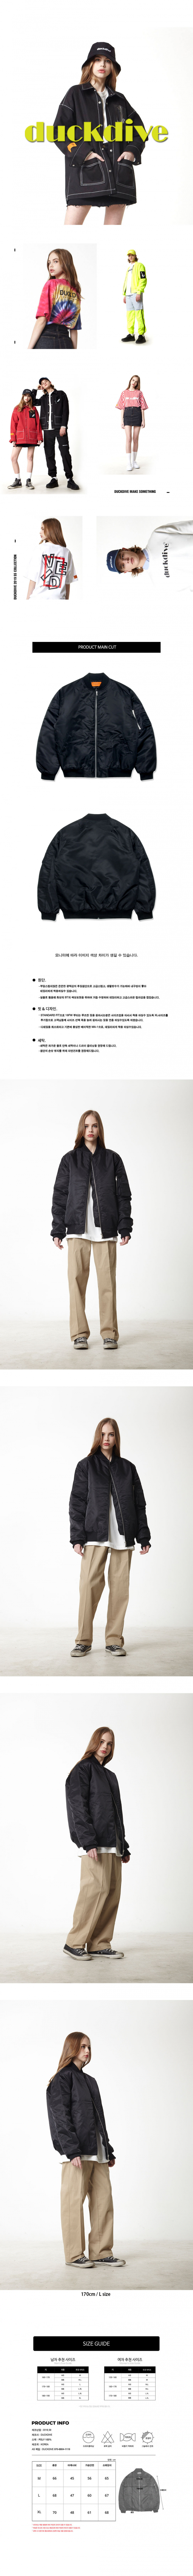 덕다이브(DUCKDIVE) 19FW 4OZ STD  MA-1 BLACK